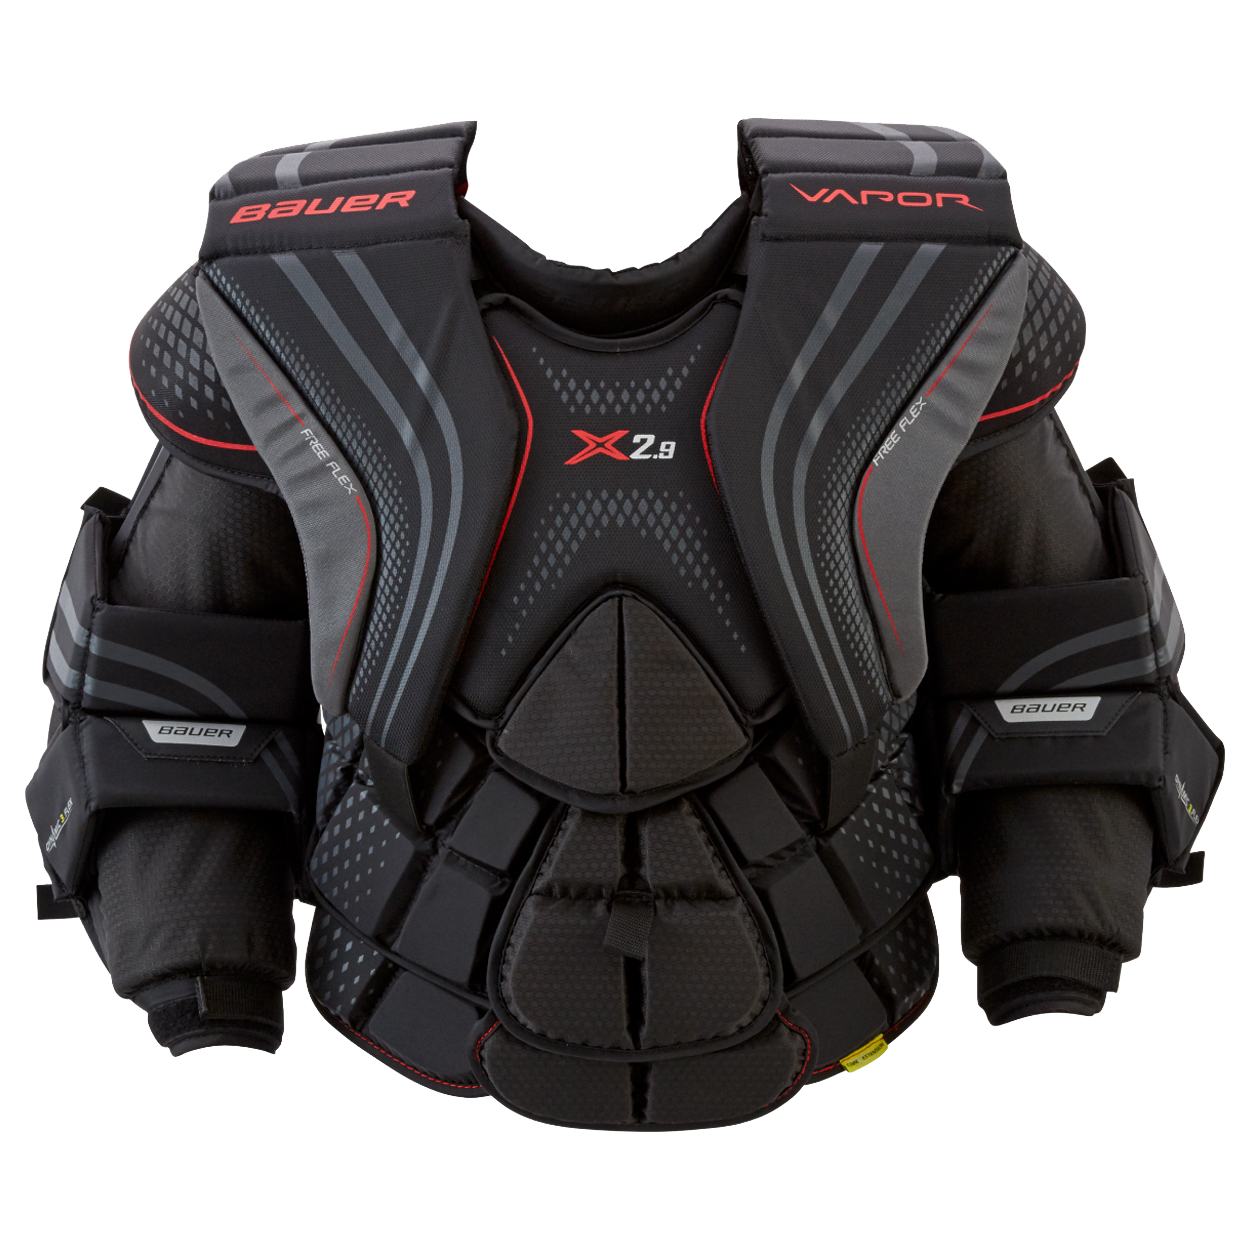 Vapor X2.9 Chest Protector Senior,,moyen